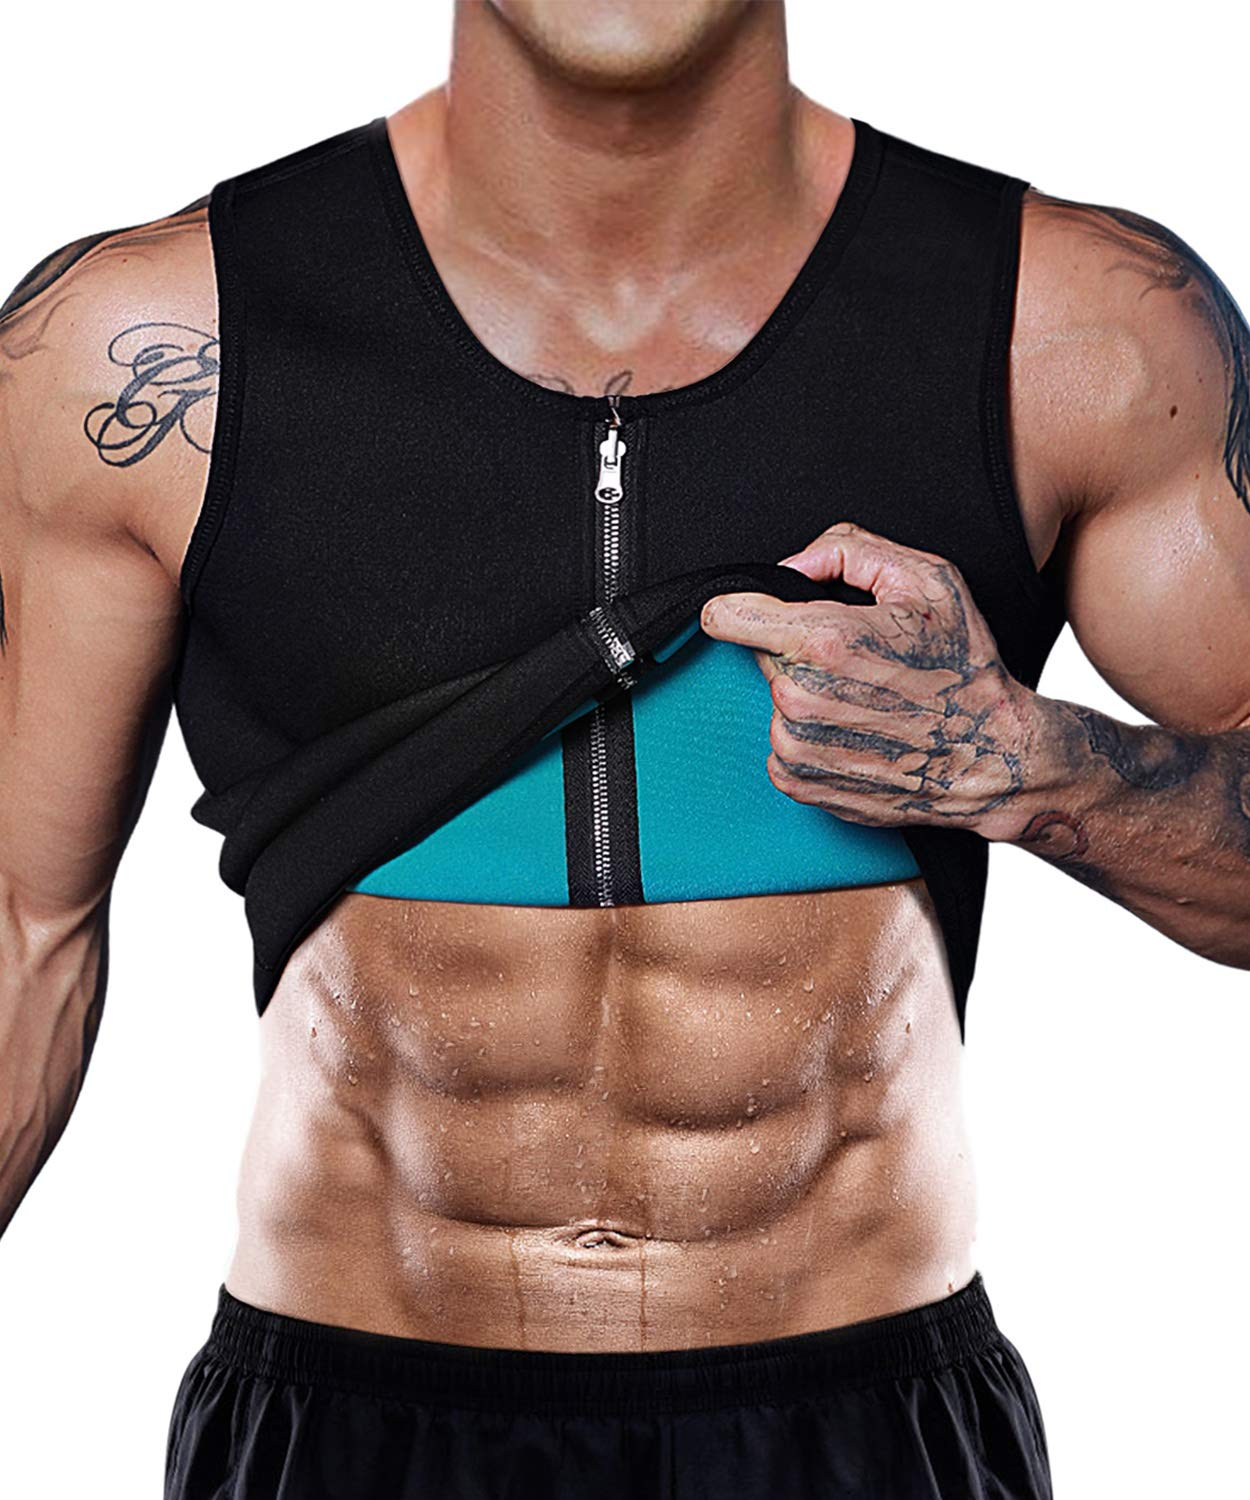 NonEcho Men Sauna Sweat Vest Weight Loss Waist Trainer Vest Neoprene Tank Top Shapewear Slimming Shirt Workout Suit